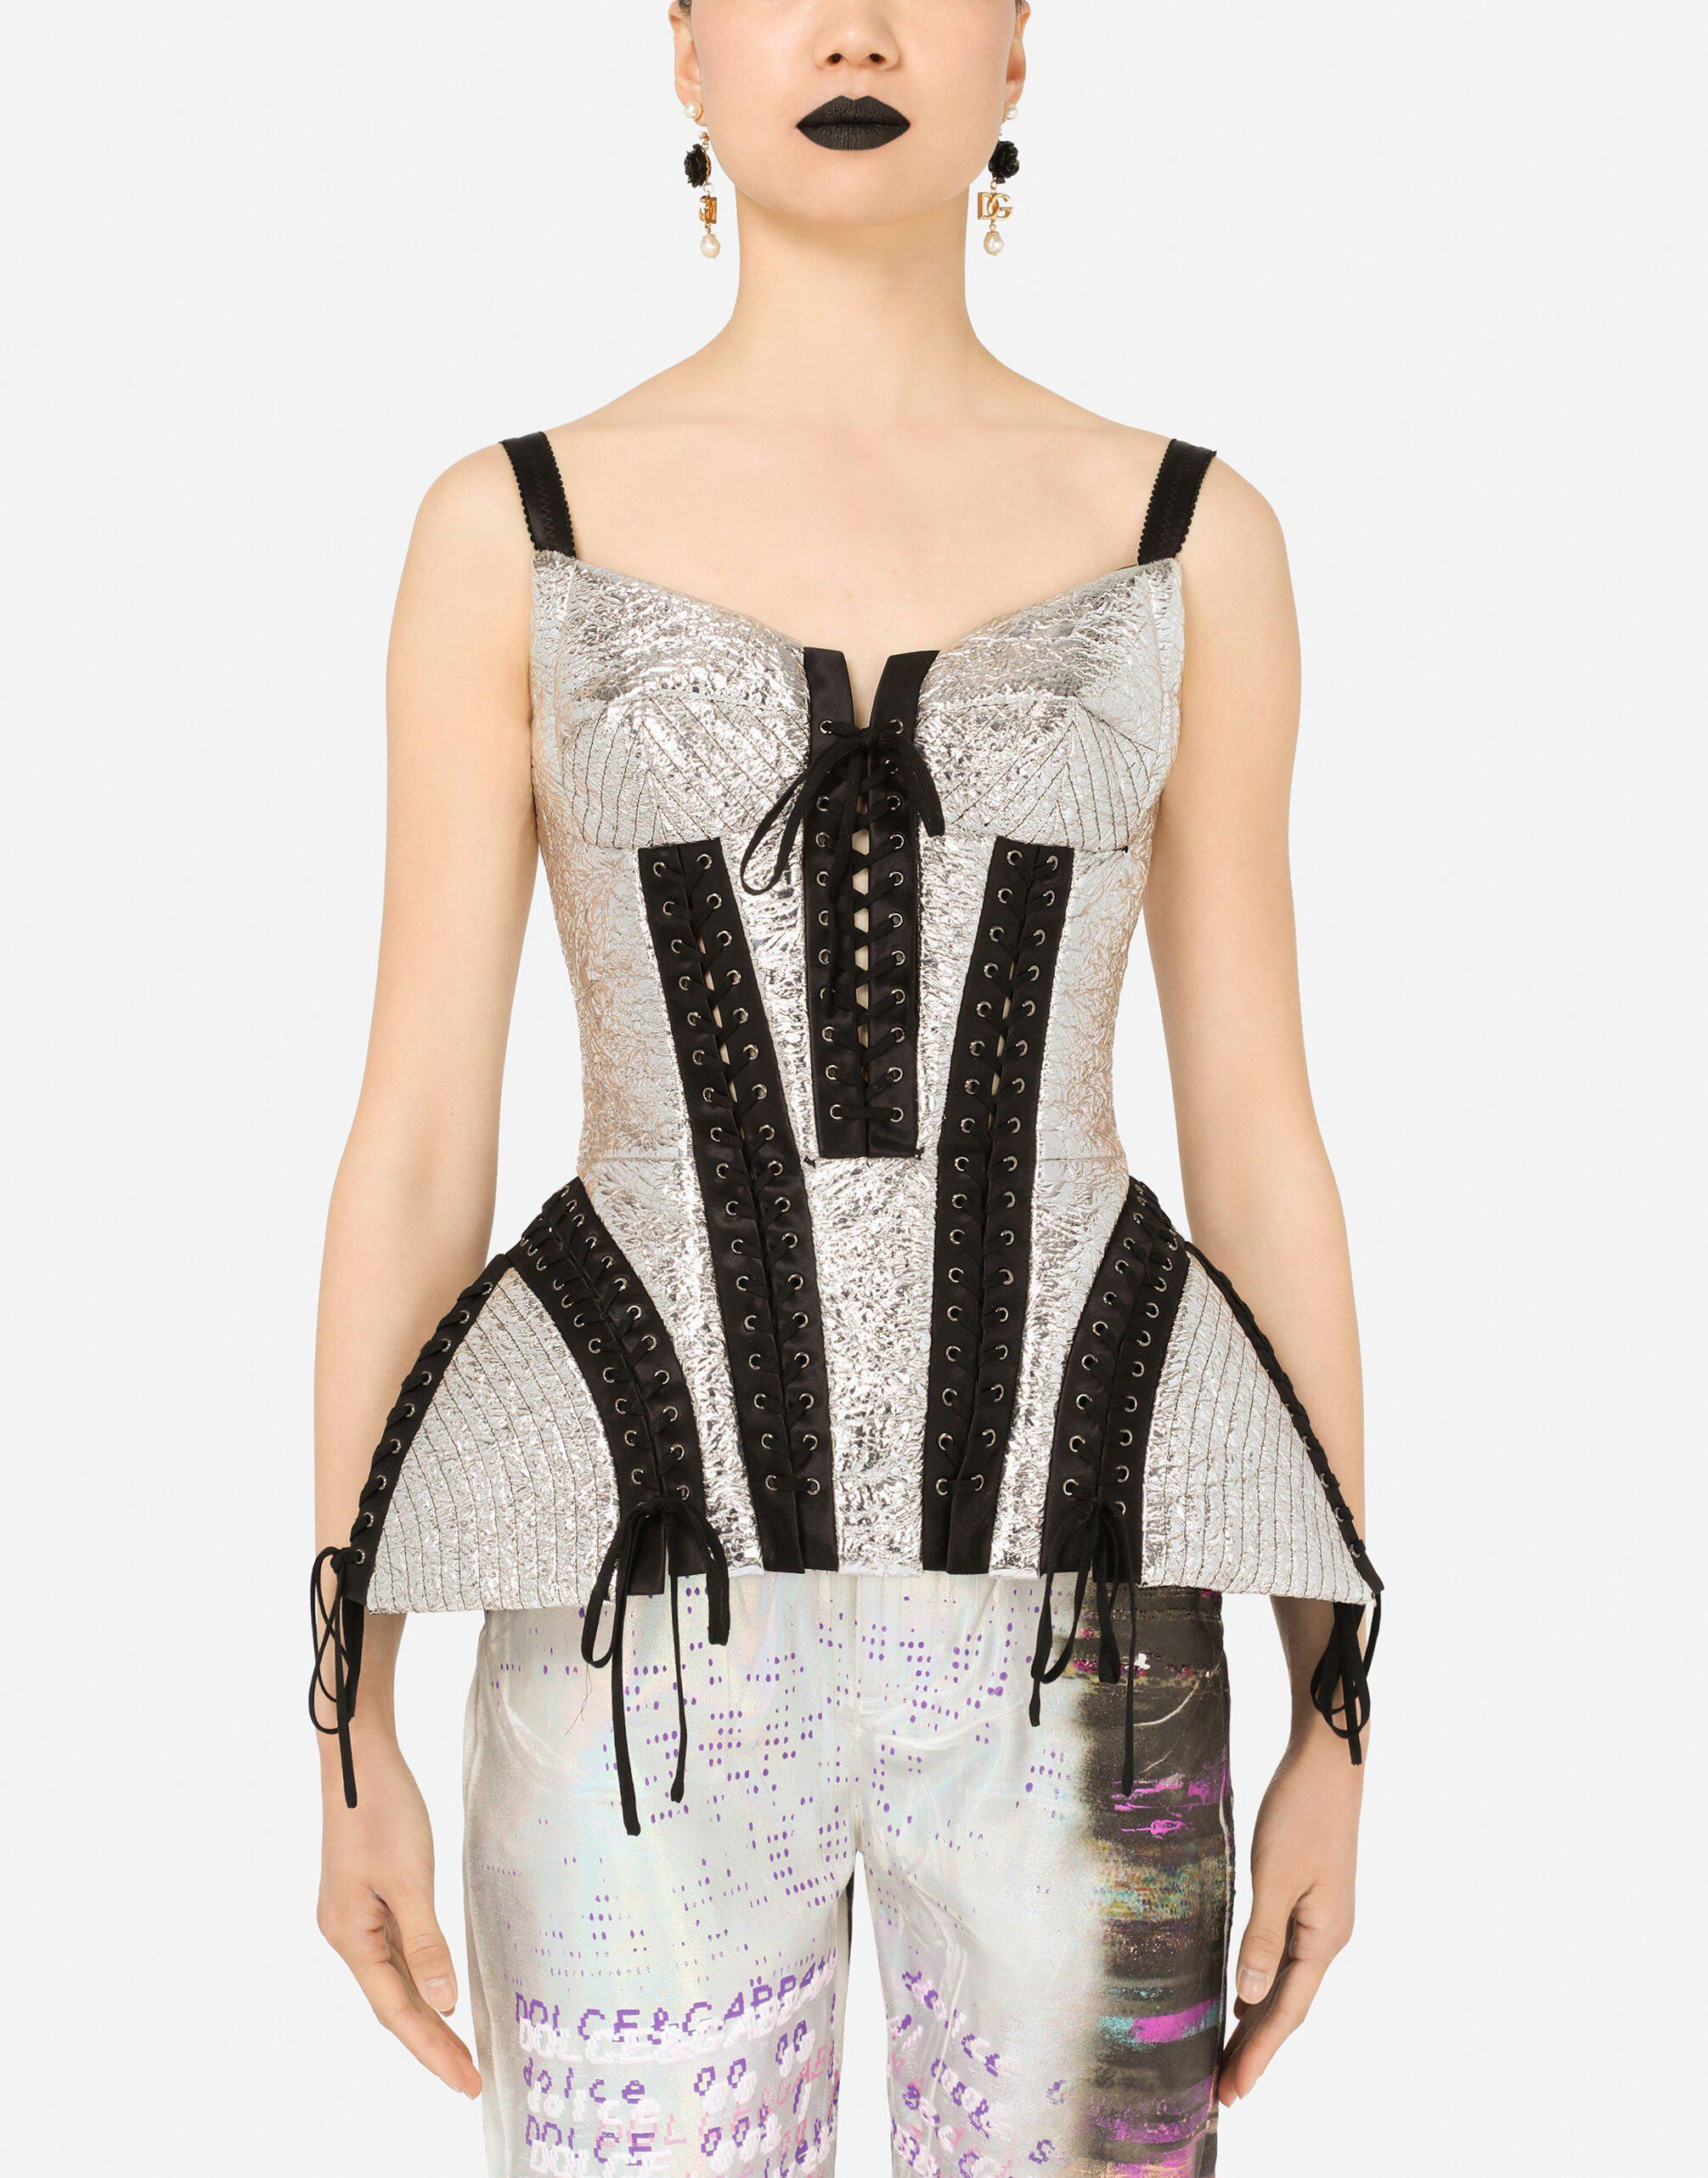 Laminated bustier with laces and eyelets